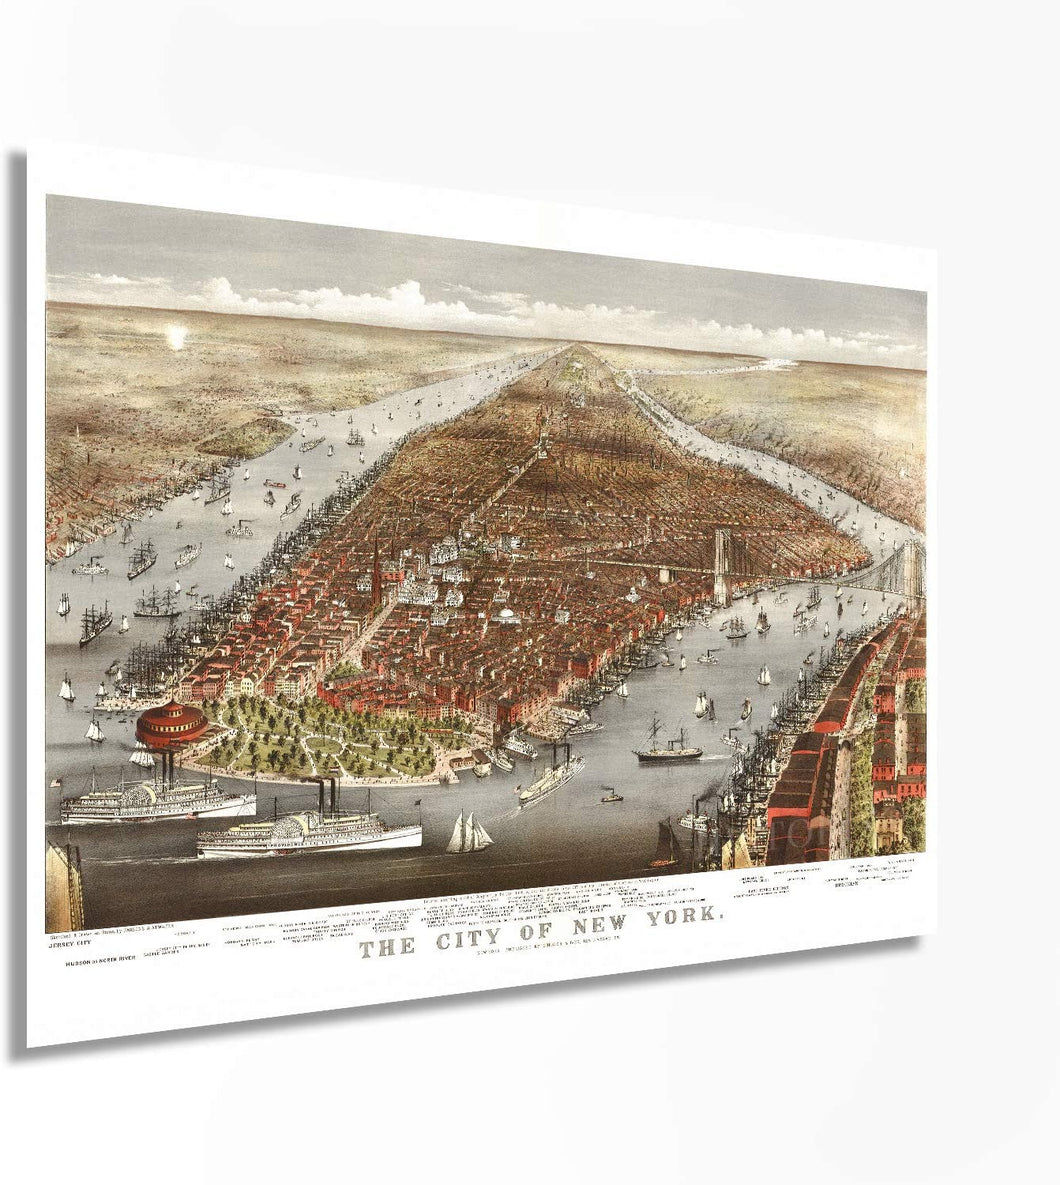 1876 The city of New York